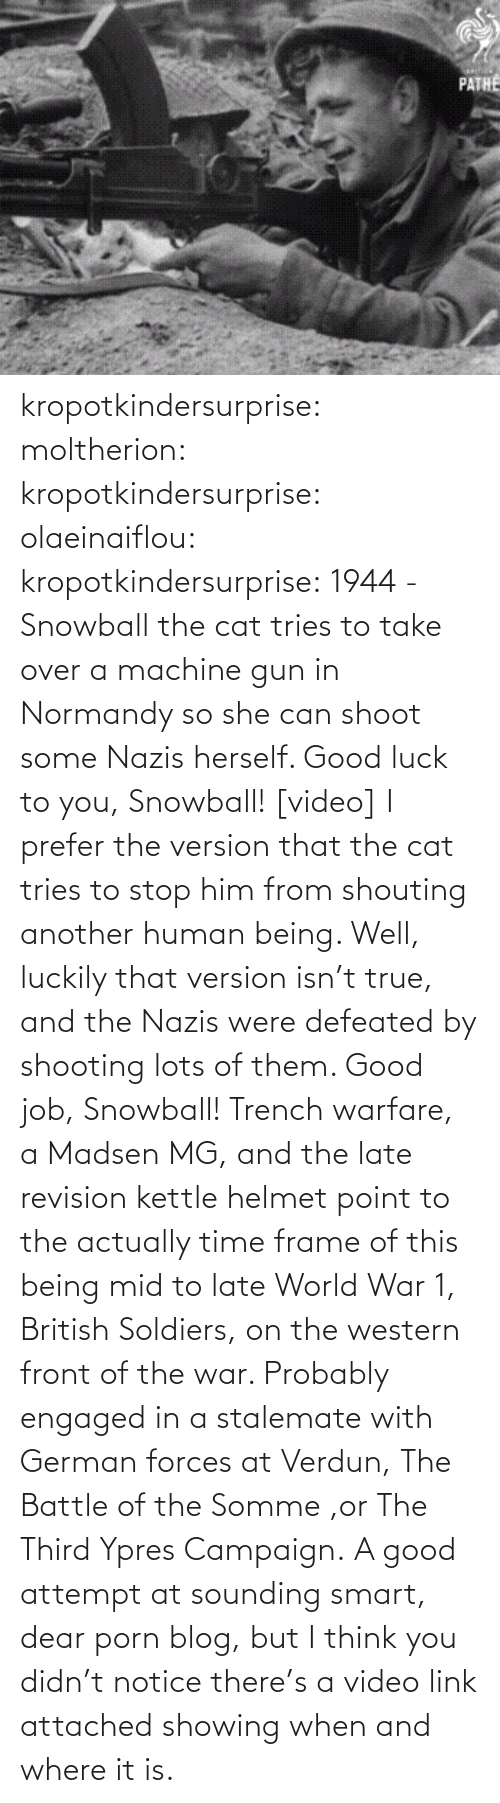 Soldiers, True, and Tumblr: PATHE kropotkindersurprise: moltherion:  kropotkindersurprise:  olaeinaiflou:  kropotkindersurprise: 1944 - Snowball the cat tries to take over a machine gun in Normandy so she can shoot some Nazis herself. Good luck to you, Snowball! [video]  I prefer the version that the cat tries to stop him from shouting another human being.   Well, luckily that version isn't true, and the Nazis were defeated by shooting lots of them. Good job, Snowball!   Trench warfare, a Madsen MG, and the late revision kettle helmet point to the actually time frame of this being mid to late World War 1, British Soldiers, on the western front of the war. Probably engaged in a stalemate with German forces at Verdun, The Battle of the Somme ,or The Third Ypres Campaign.  A good attempt at sounding smart, dear porn blog, but I think you didn't notice there's a video link attached showing when and where it is.